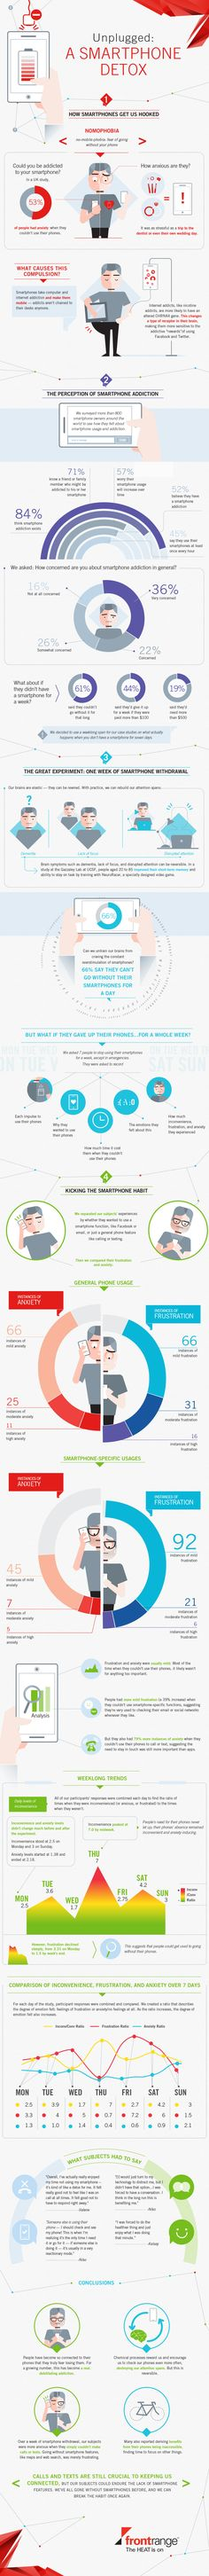 Admit it - you're addicted to your smart phone too. Is it a true affliction though? You just might think so after you check out this #smartphone #addiction #infographic - nomophobia!